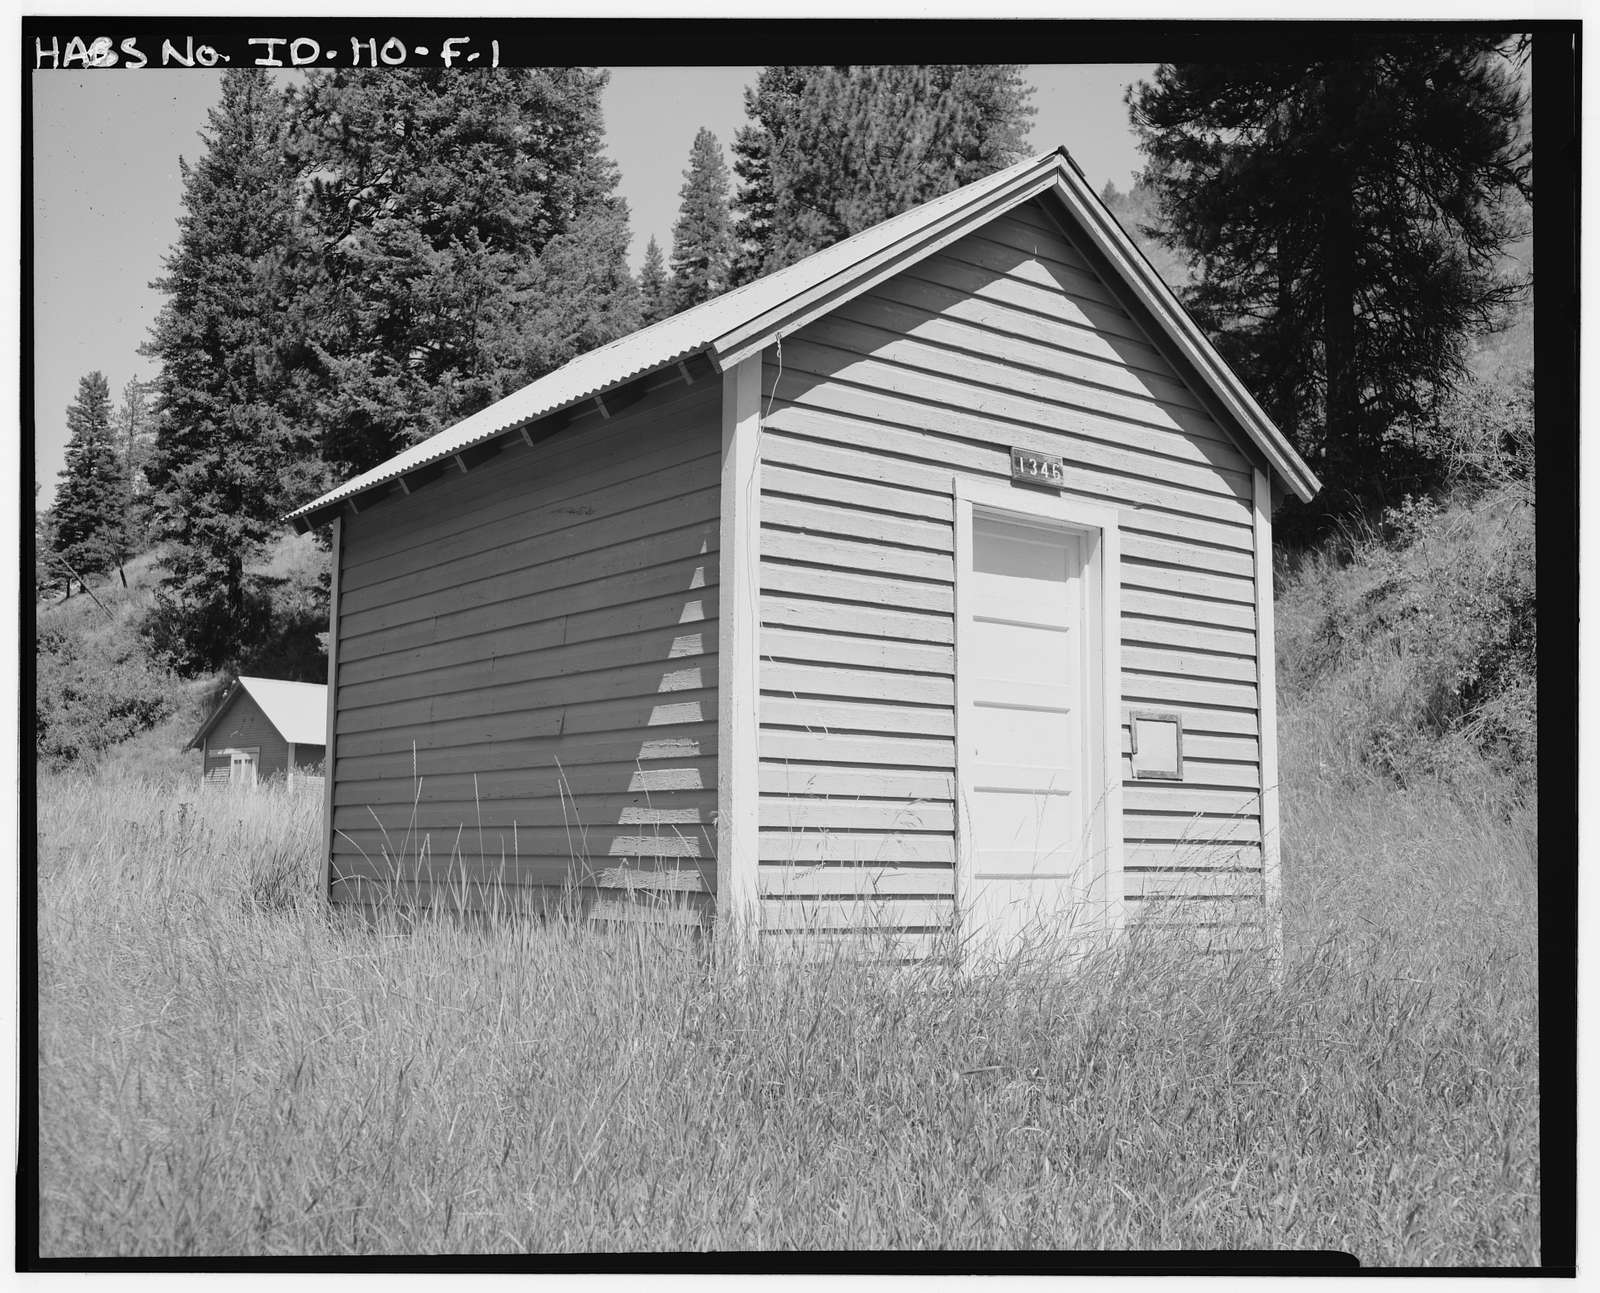 Hornet Ranger Station, Storage Building, Forest Service Road No. 50002, Council, Adams County, ID